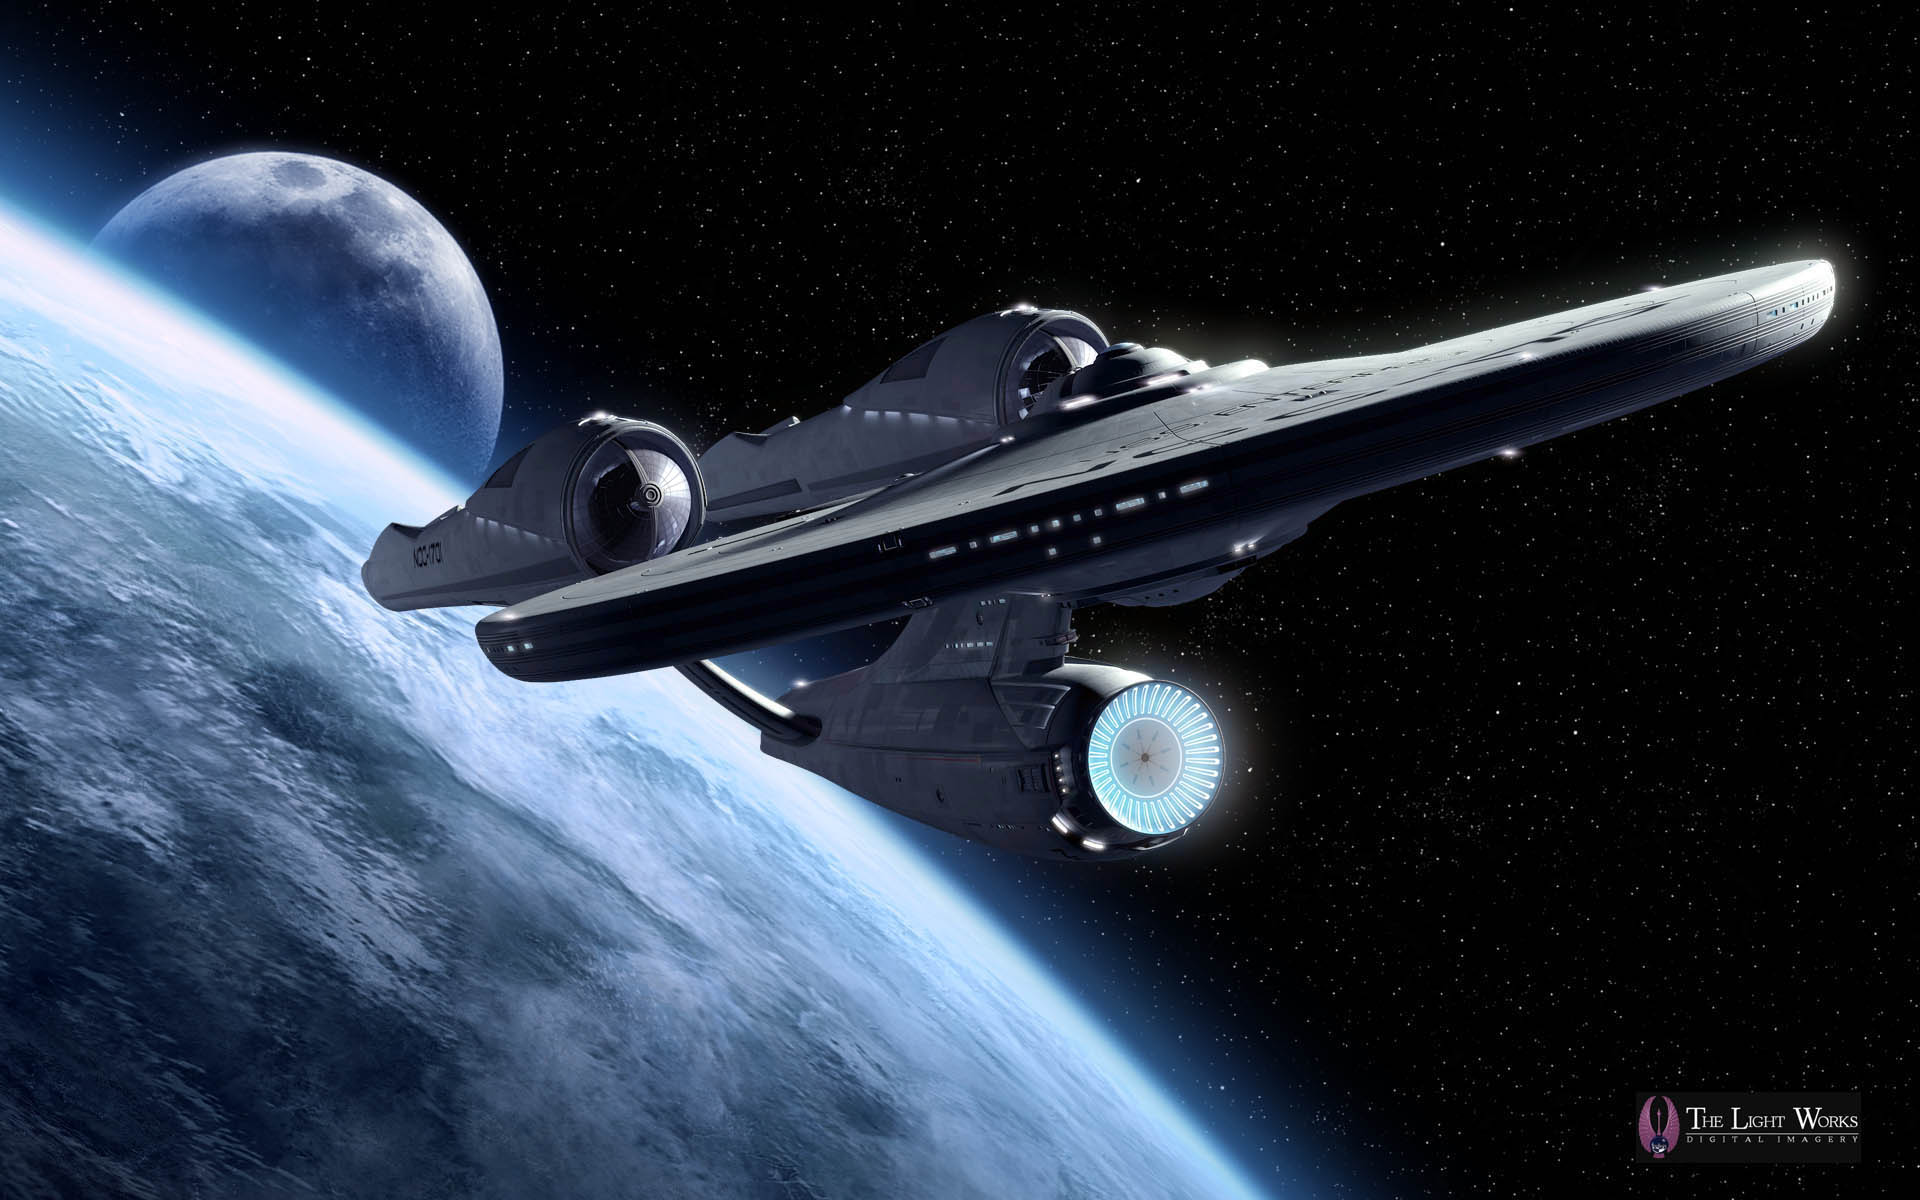 enterprise e wallpaper hd - photo #11